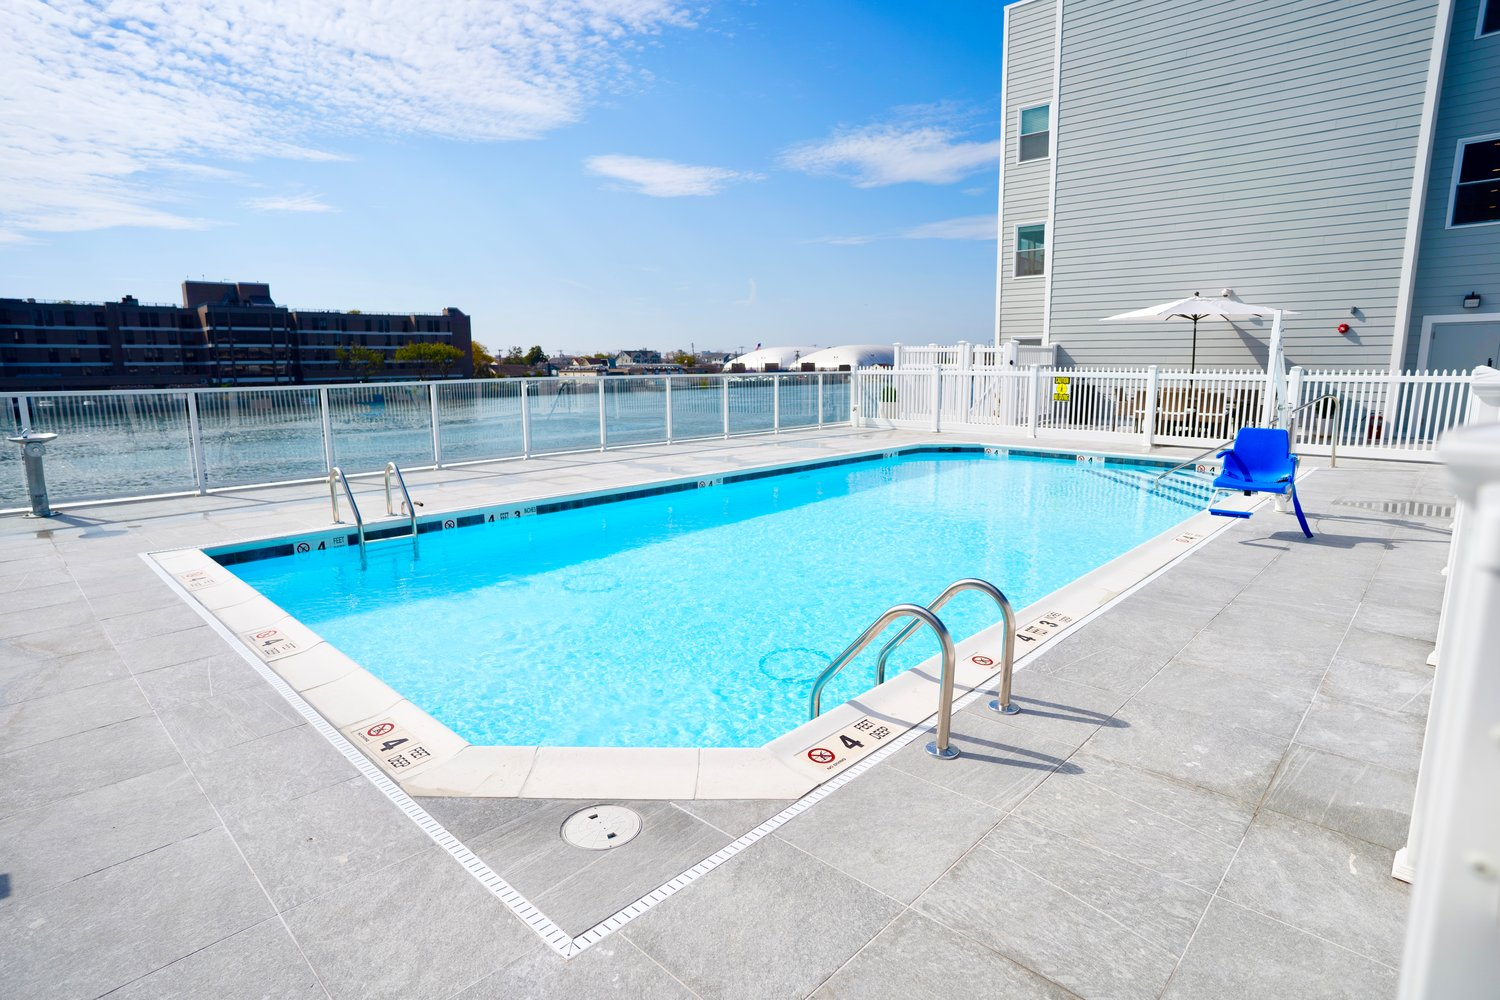 One of the amenities at the complex is a pool deck between both towers.